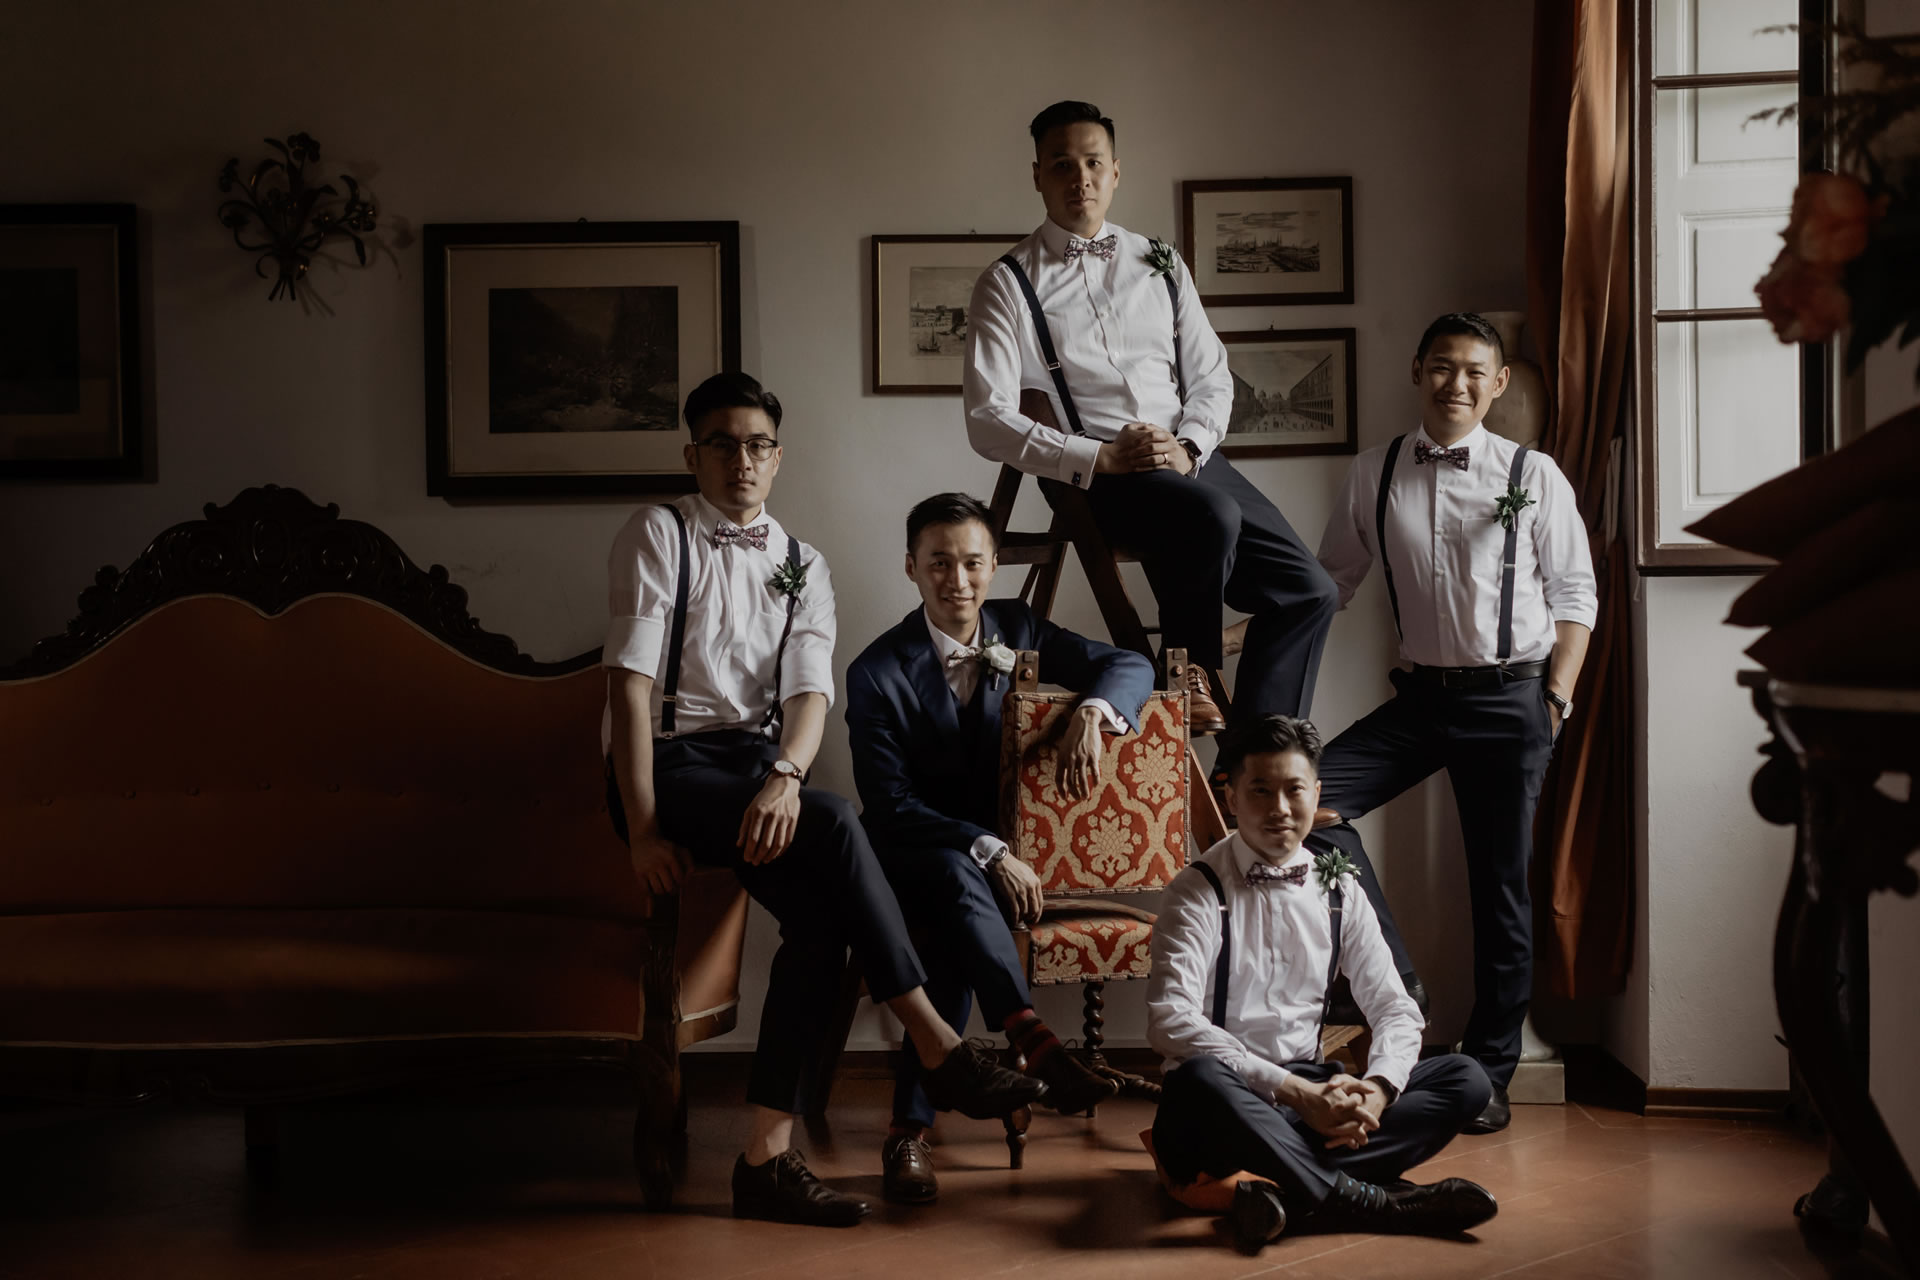 - 10 :: Group's portrait: what remains of that day :: Luxury wedding photography - 9 ::  - 10